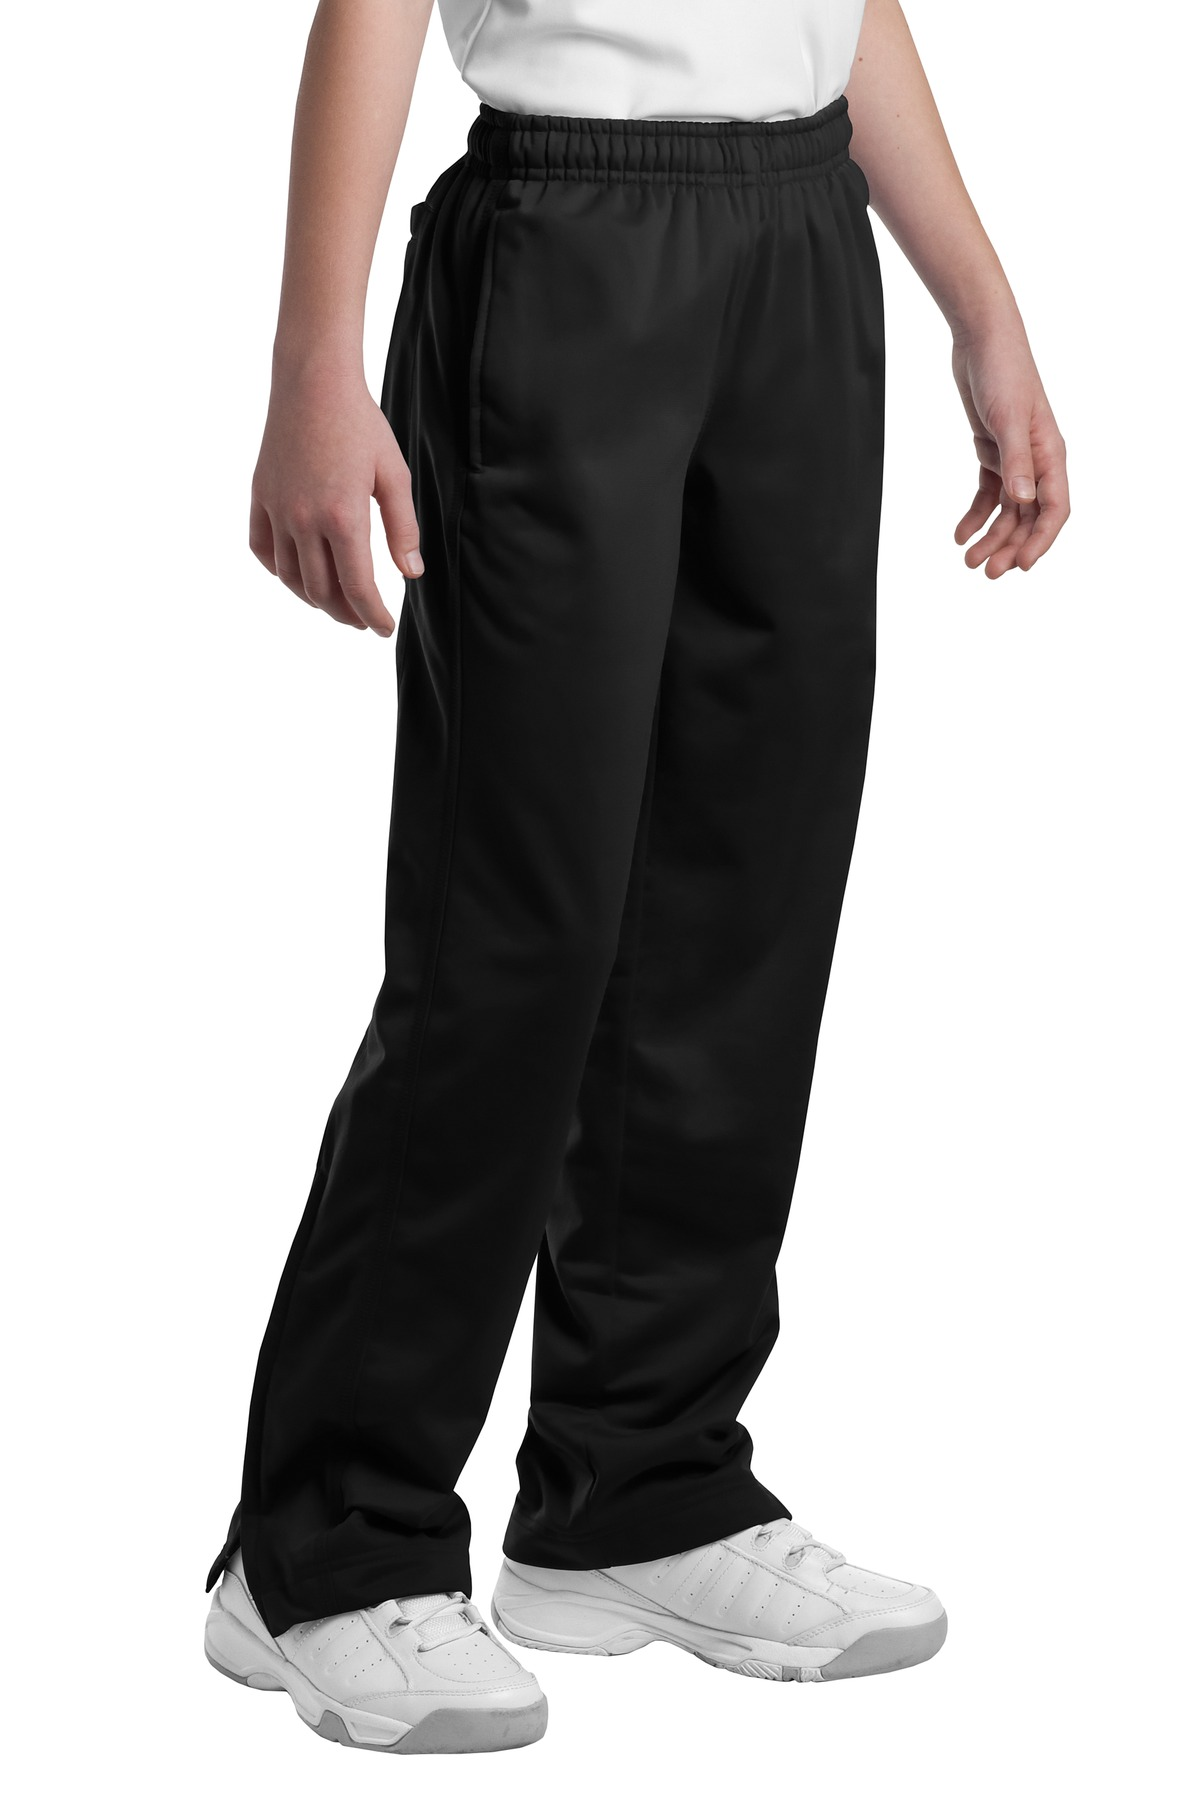 Sport-Tek ®  Youth Tricot Track Pant. YPST91 - Black